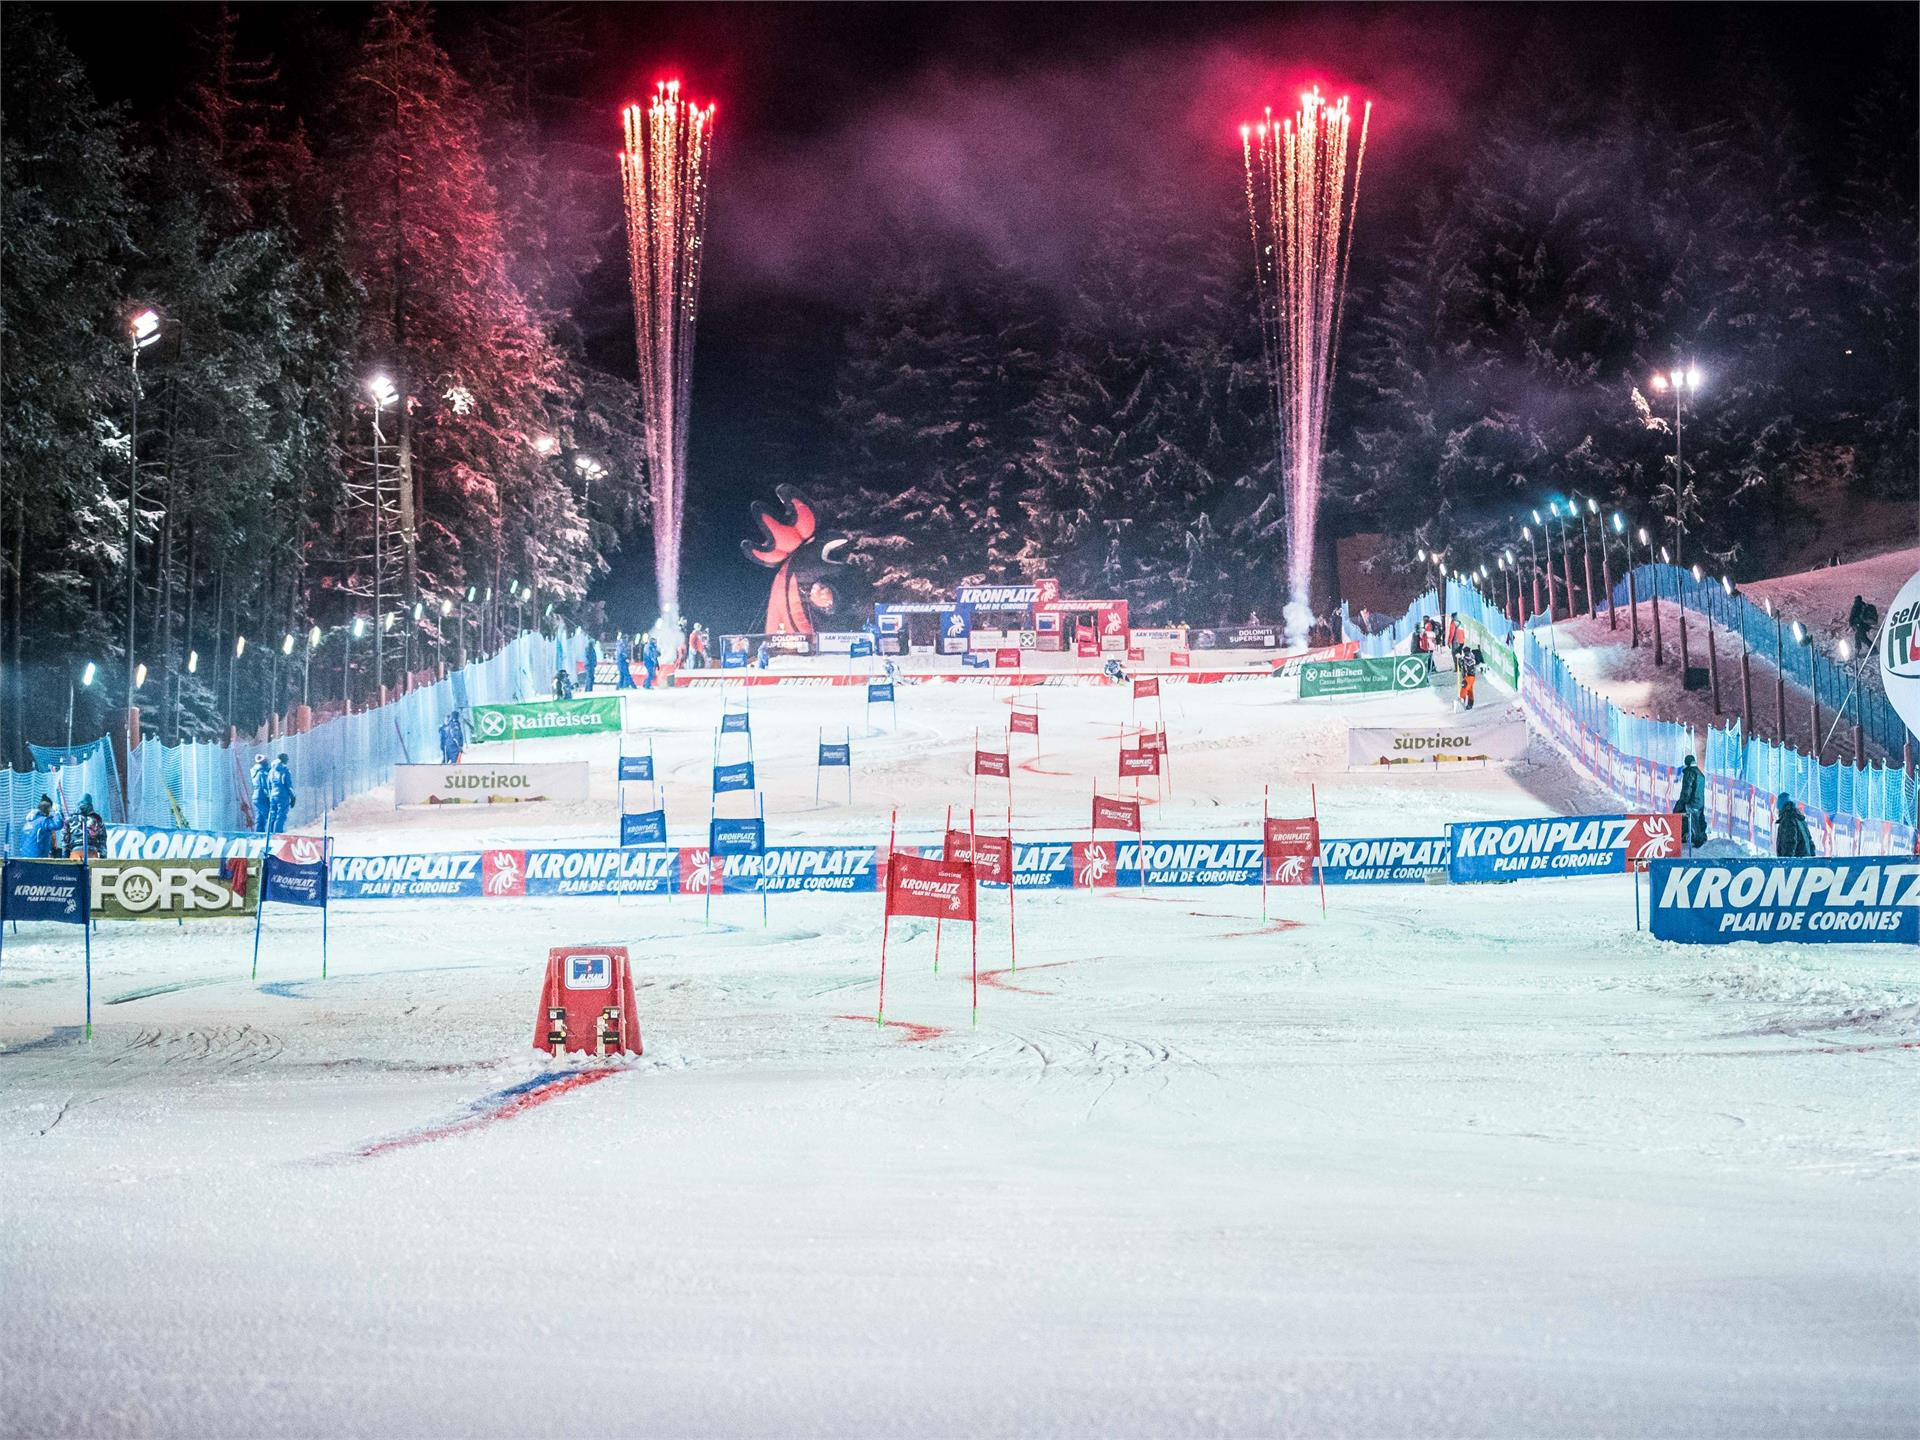 FIS Europa Cup